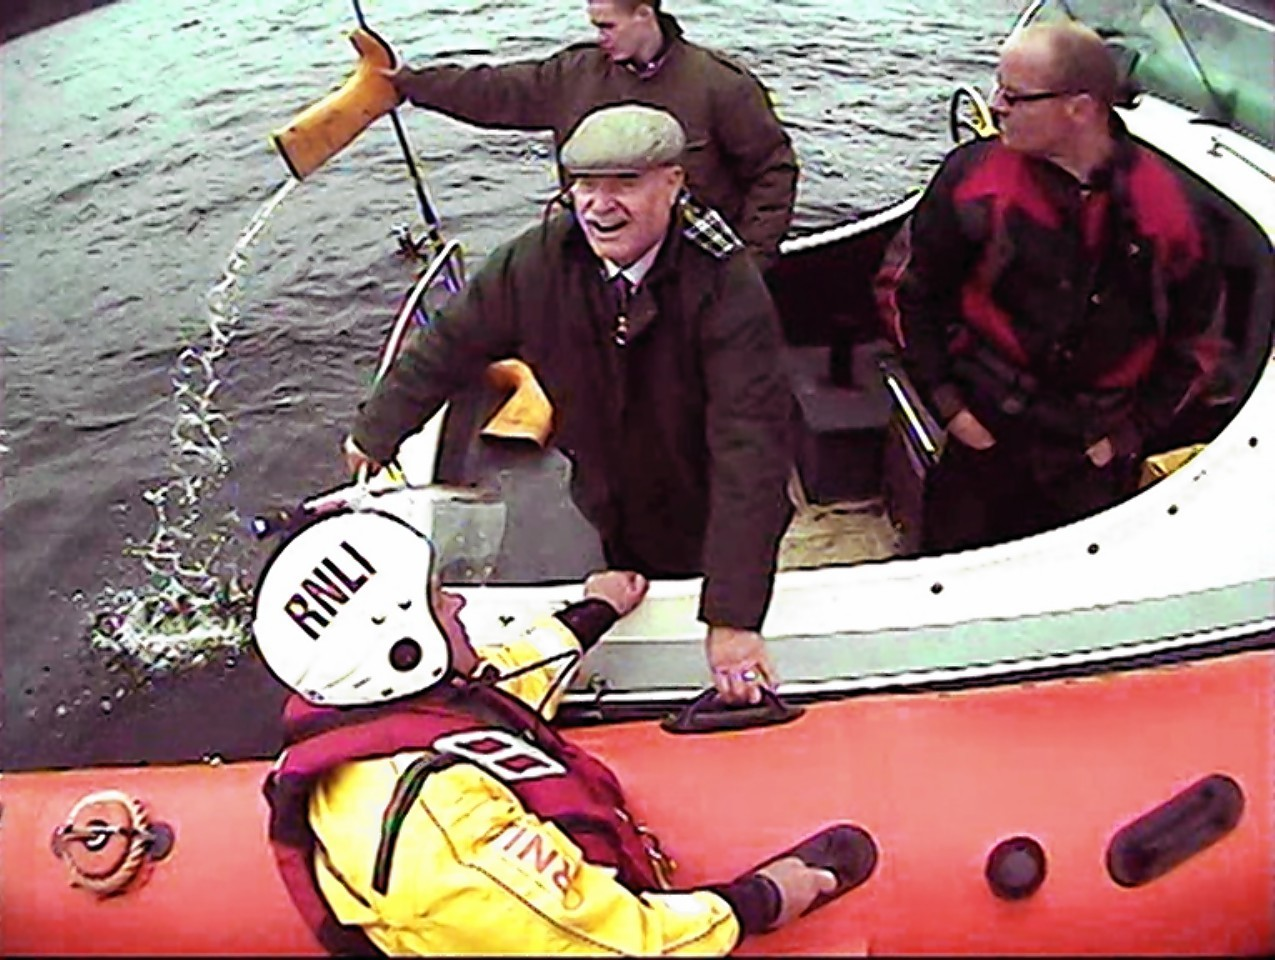 The rescue operation on Loch Ness